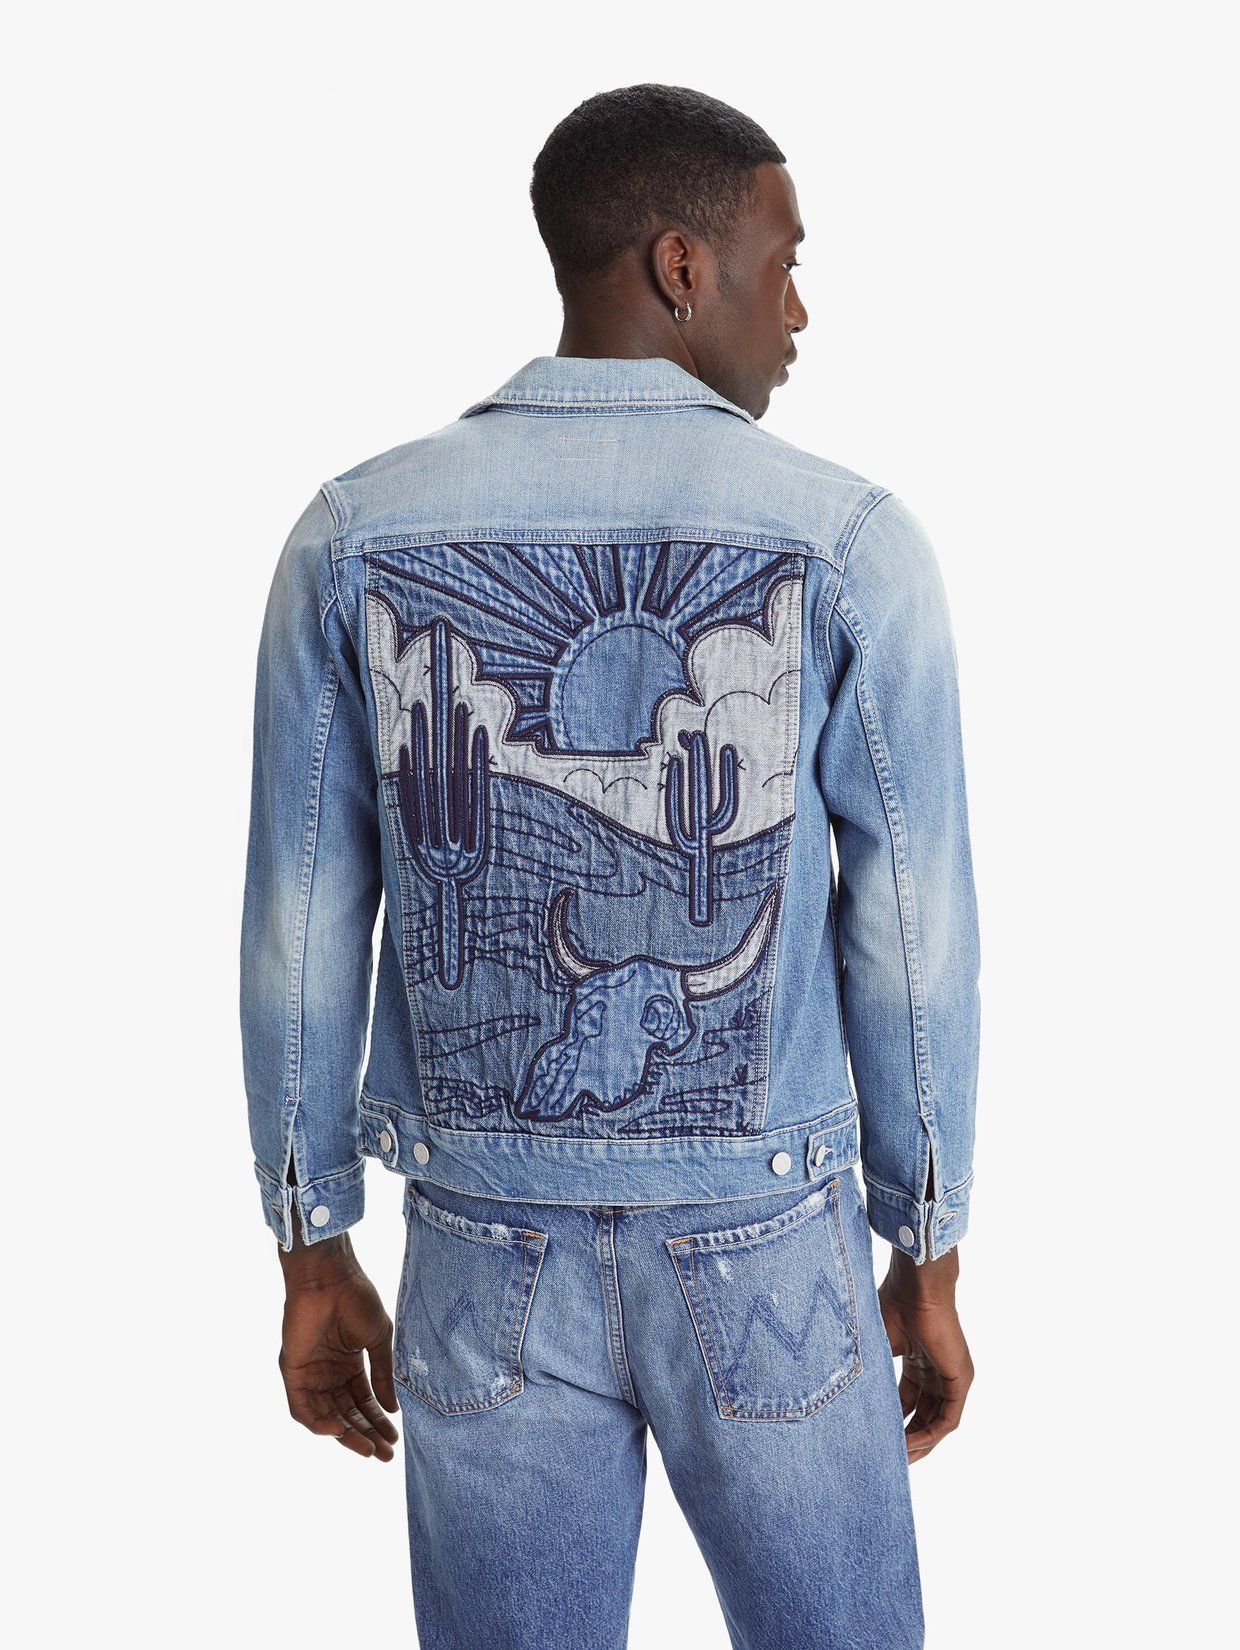 The Mountain Drifter Jacket Deserted In 2021 Diy Denim Jacket Painted Denim Jacket Denim Ideas [ 1650 x 1240 Pixel ]